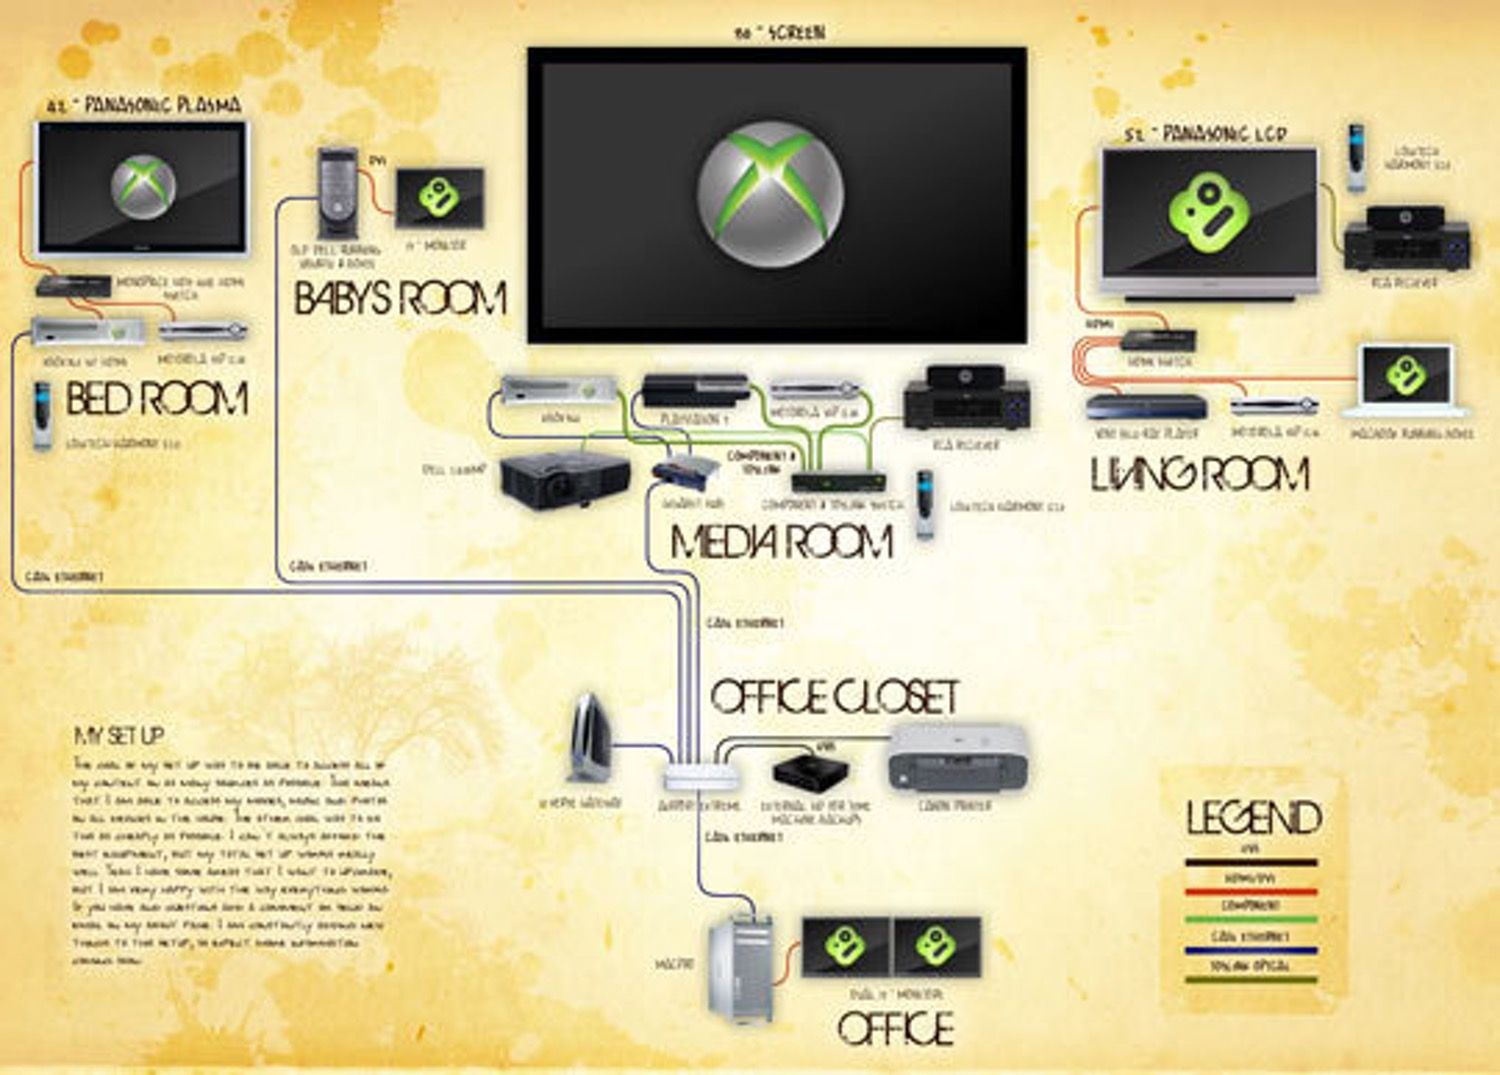 typical home theater wiring diagram best wiring library Home Theater Layout how to set up a networked home theater with an xbox 360 home rh pinterest com home theater setup diagram